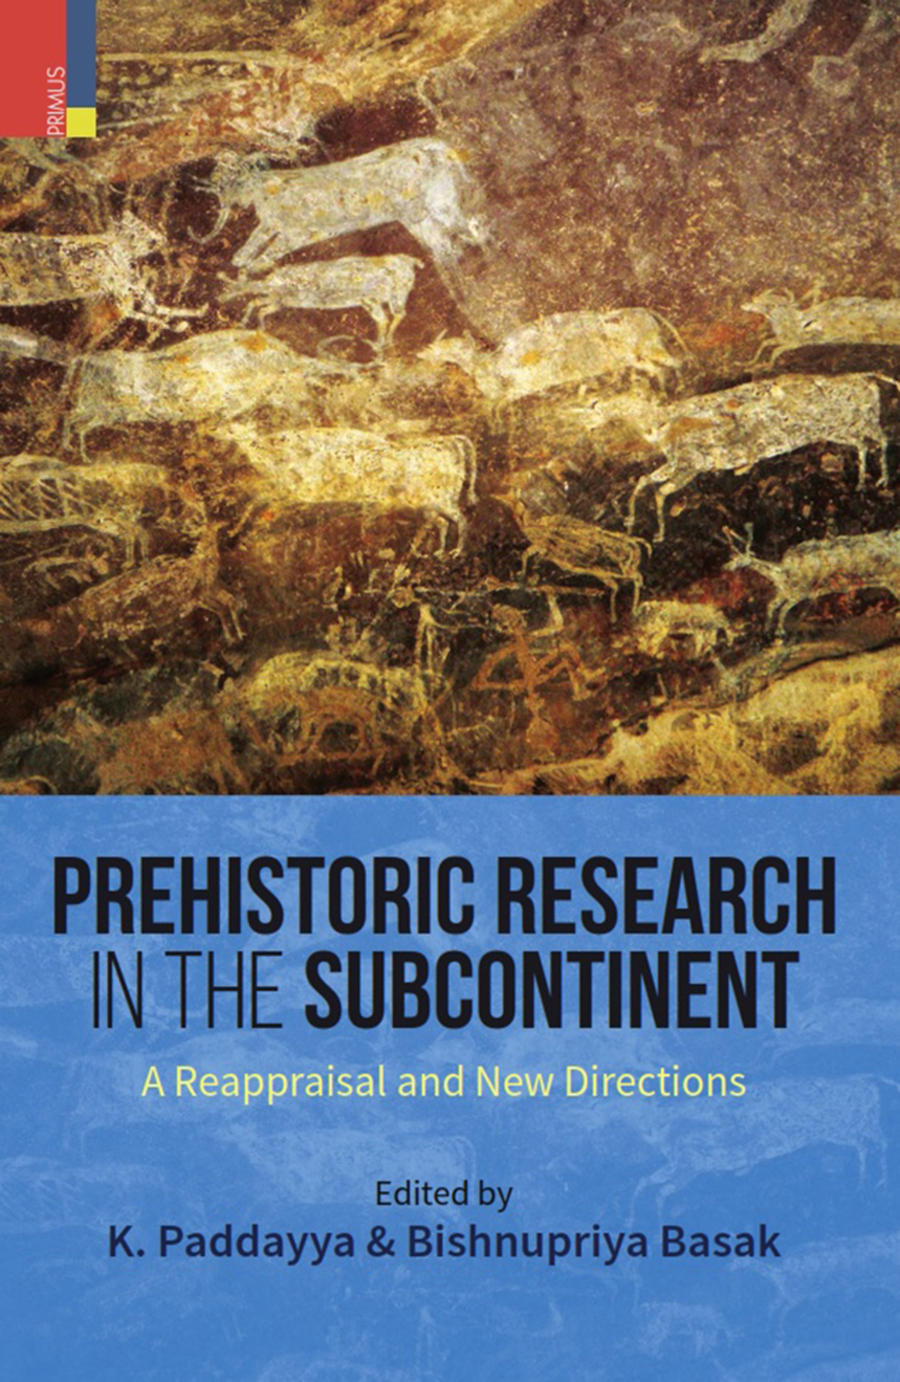 Prehistoric Research in the Subcontinent